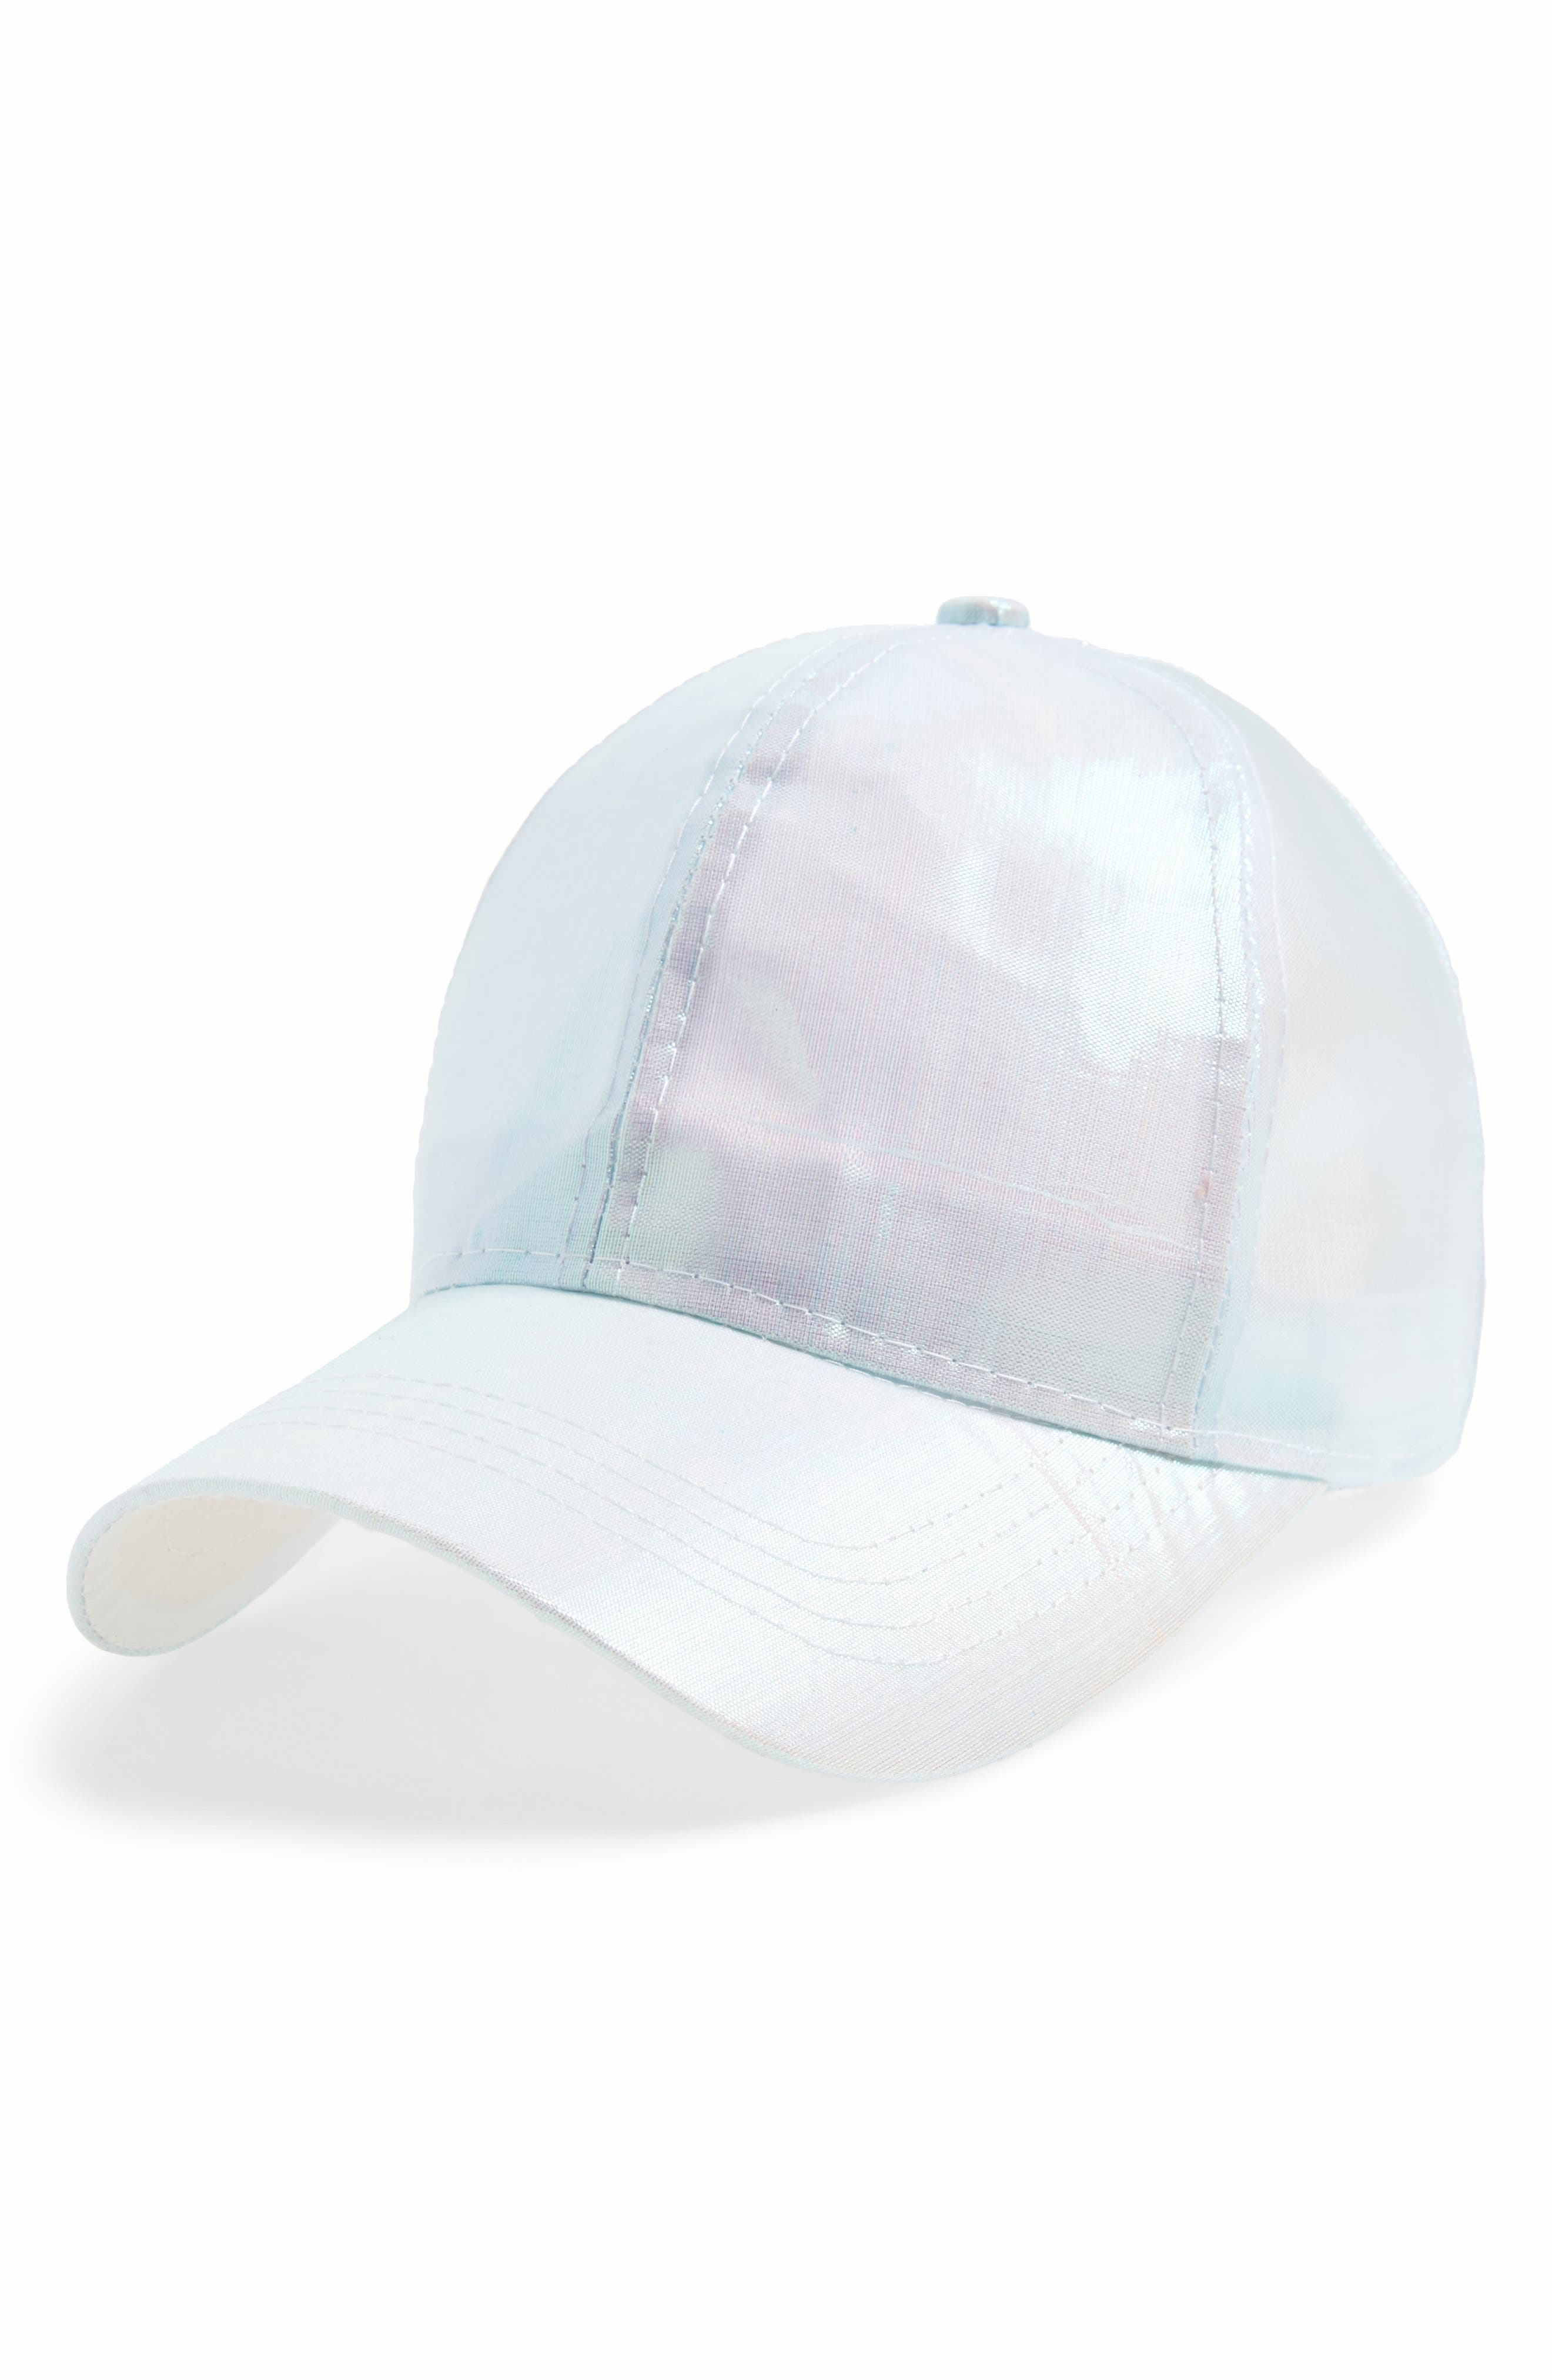 Cara Iridescent Ball Cap (Girls)